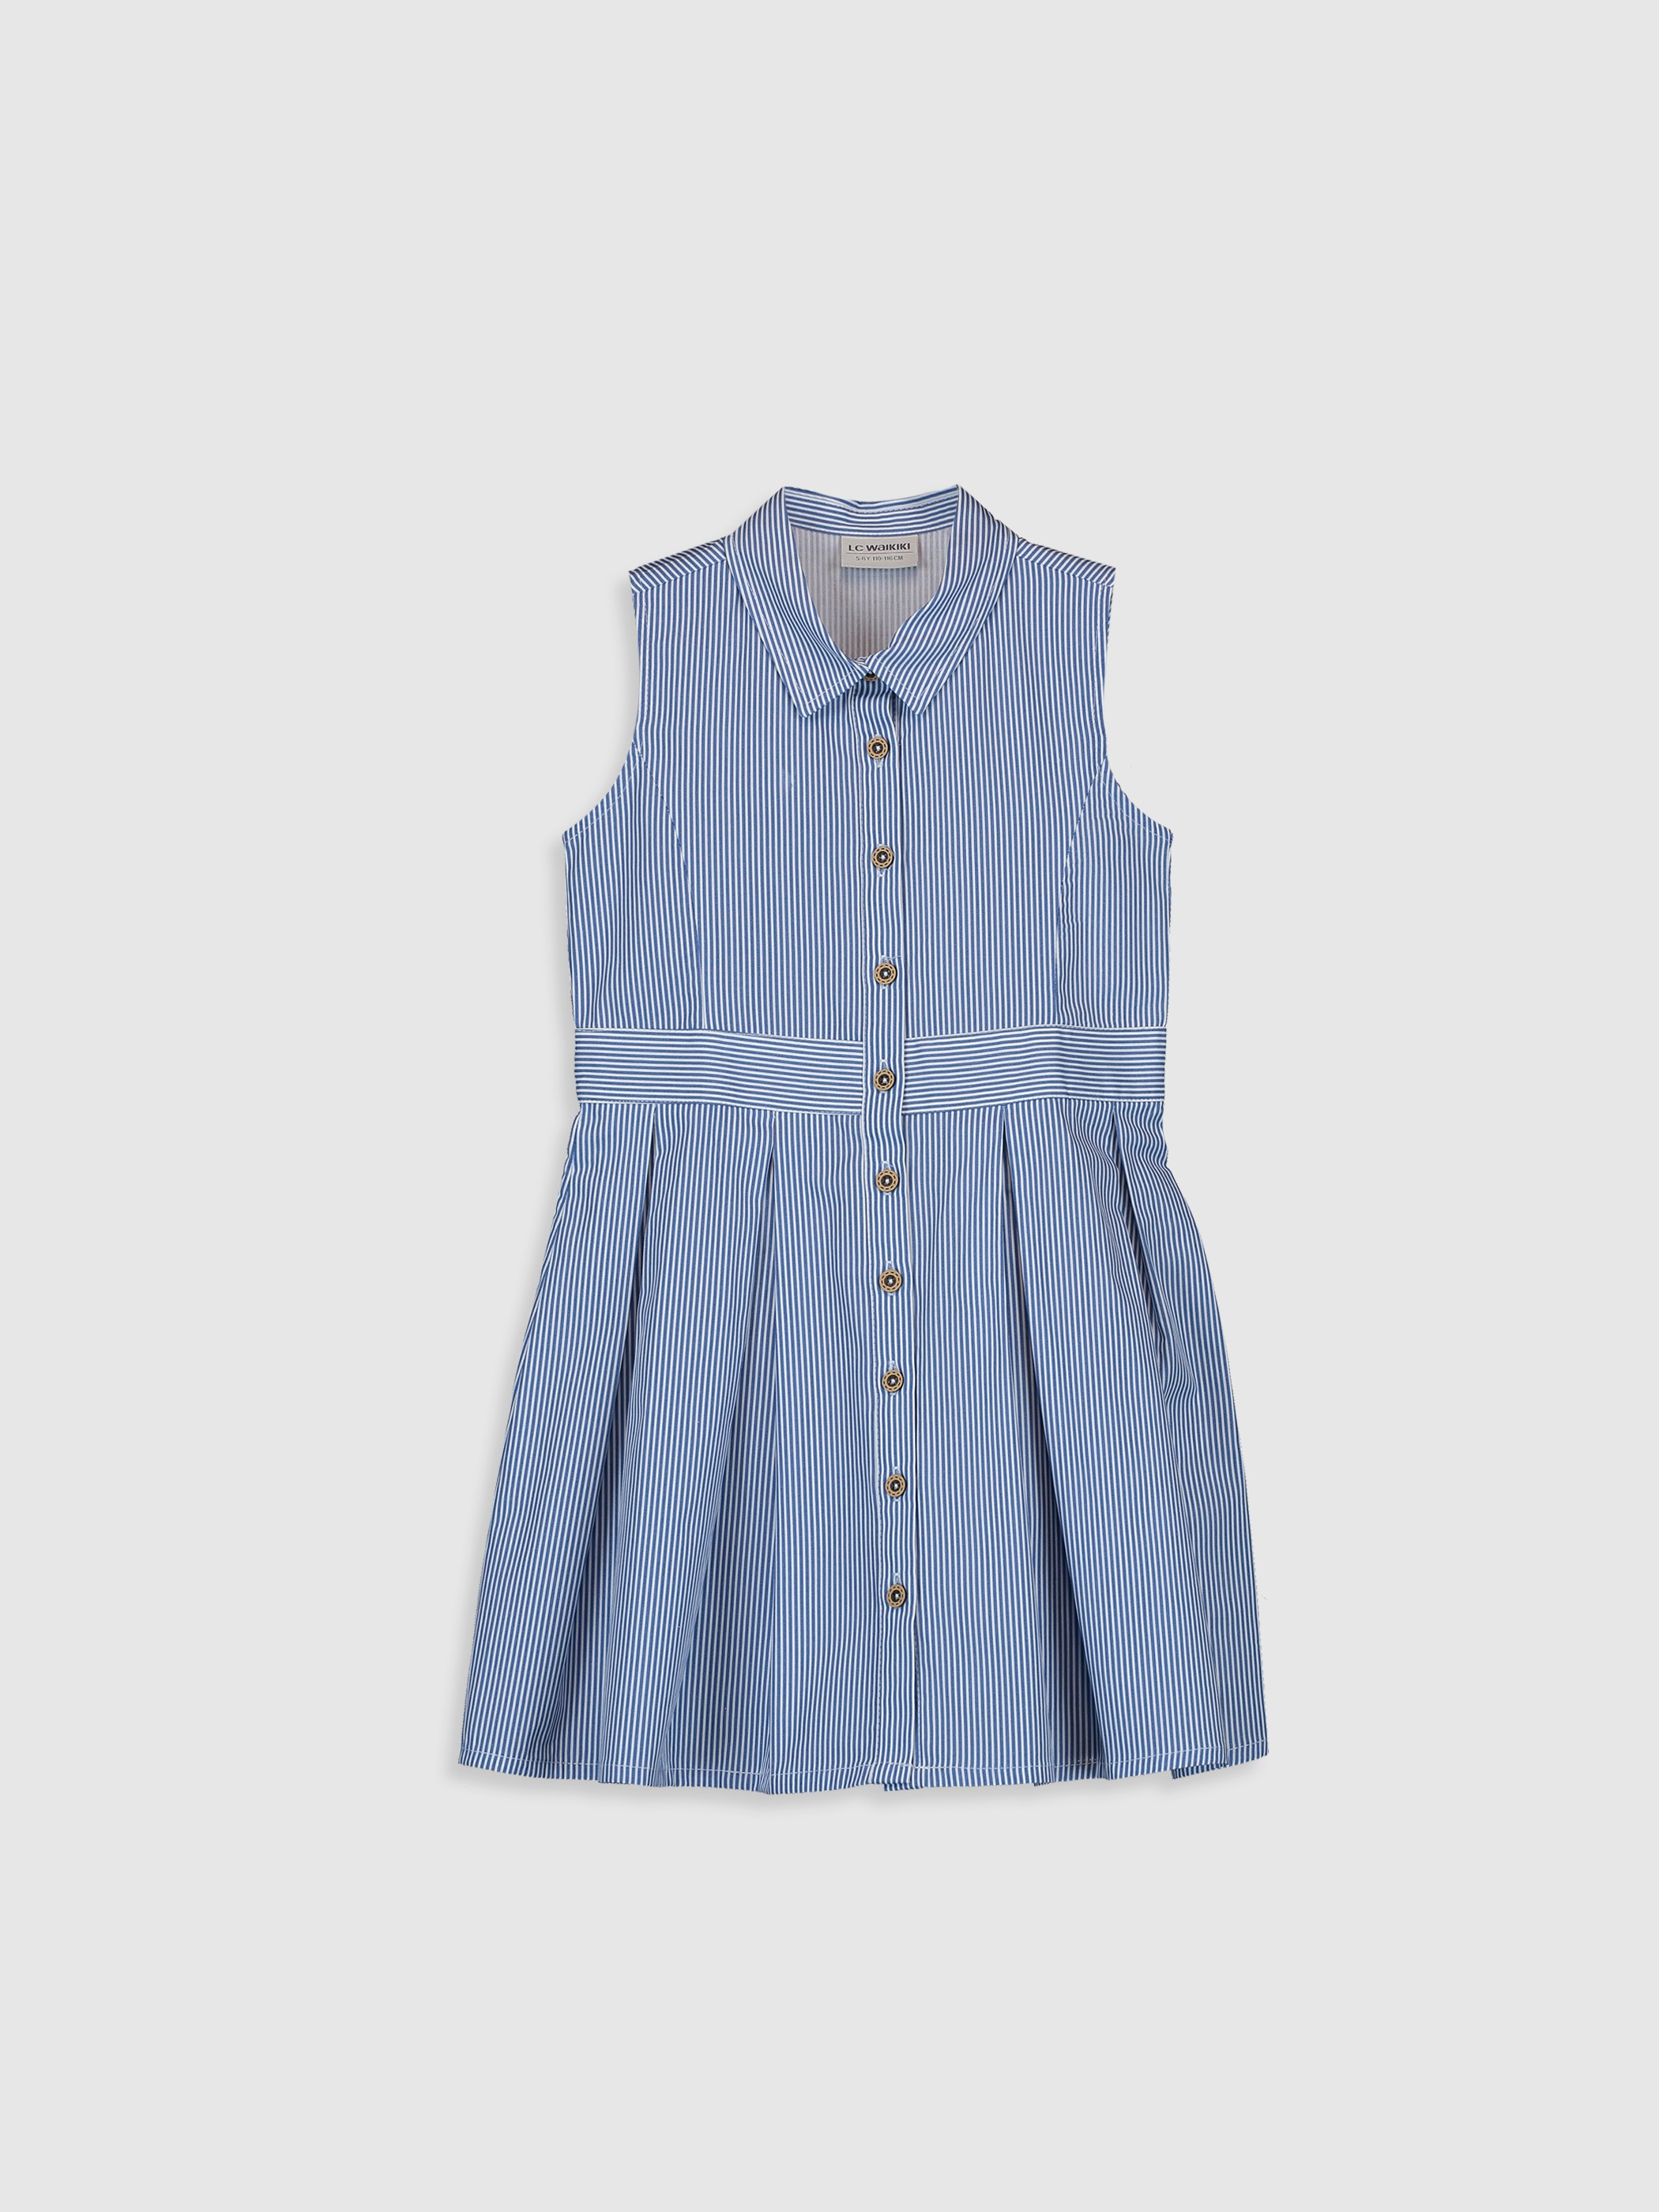 BLUE - Girl's's Striped Poplin Dress Mother and Daughter Matching - 0SE711Z4